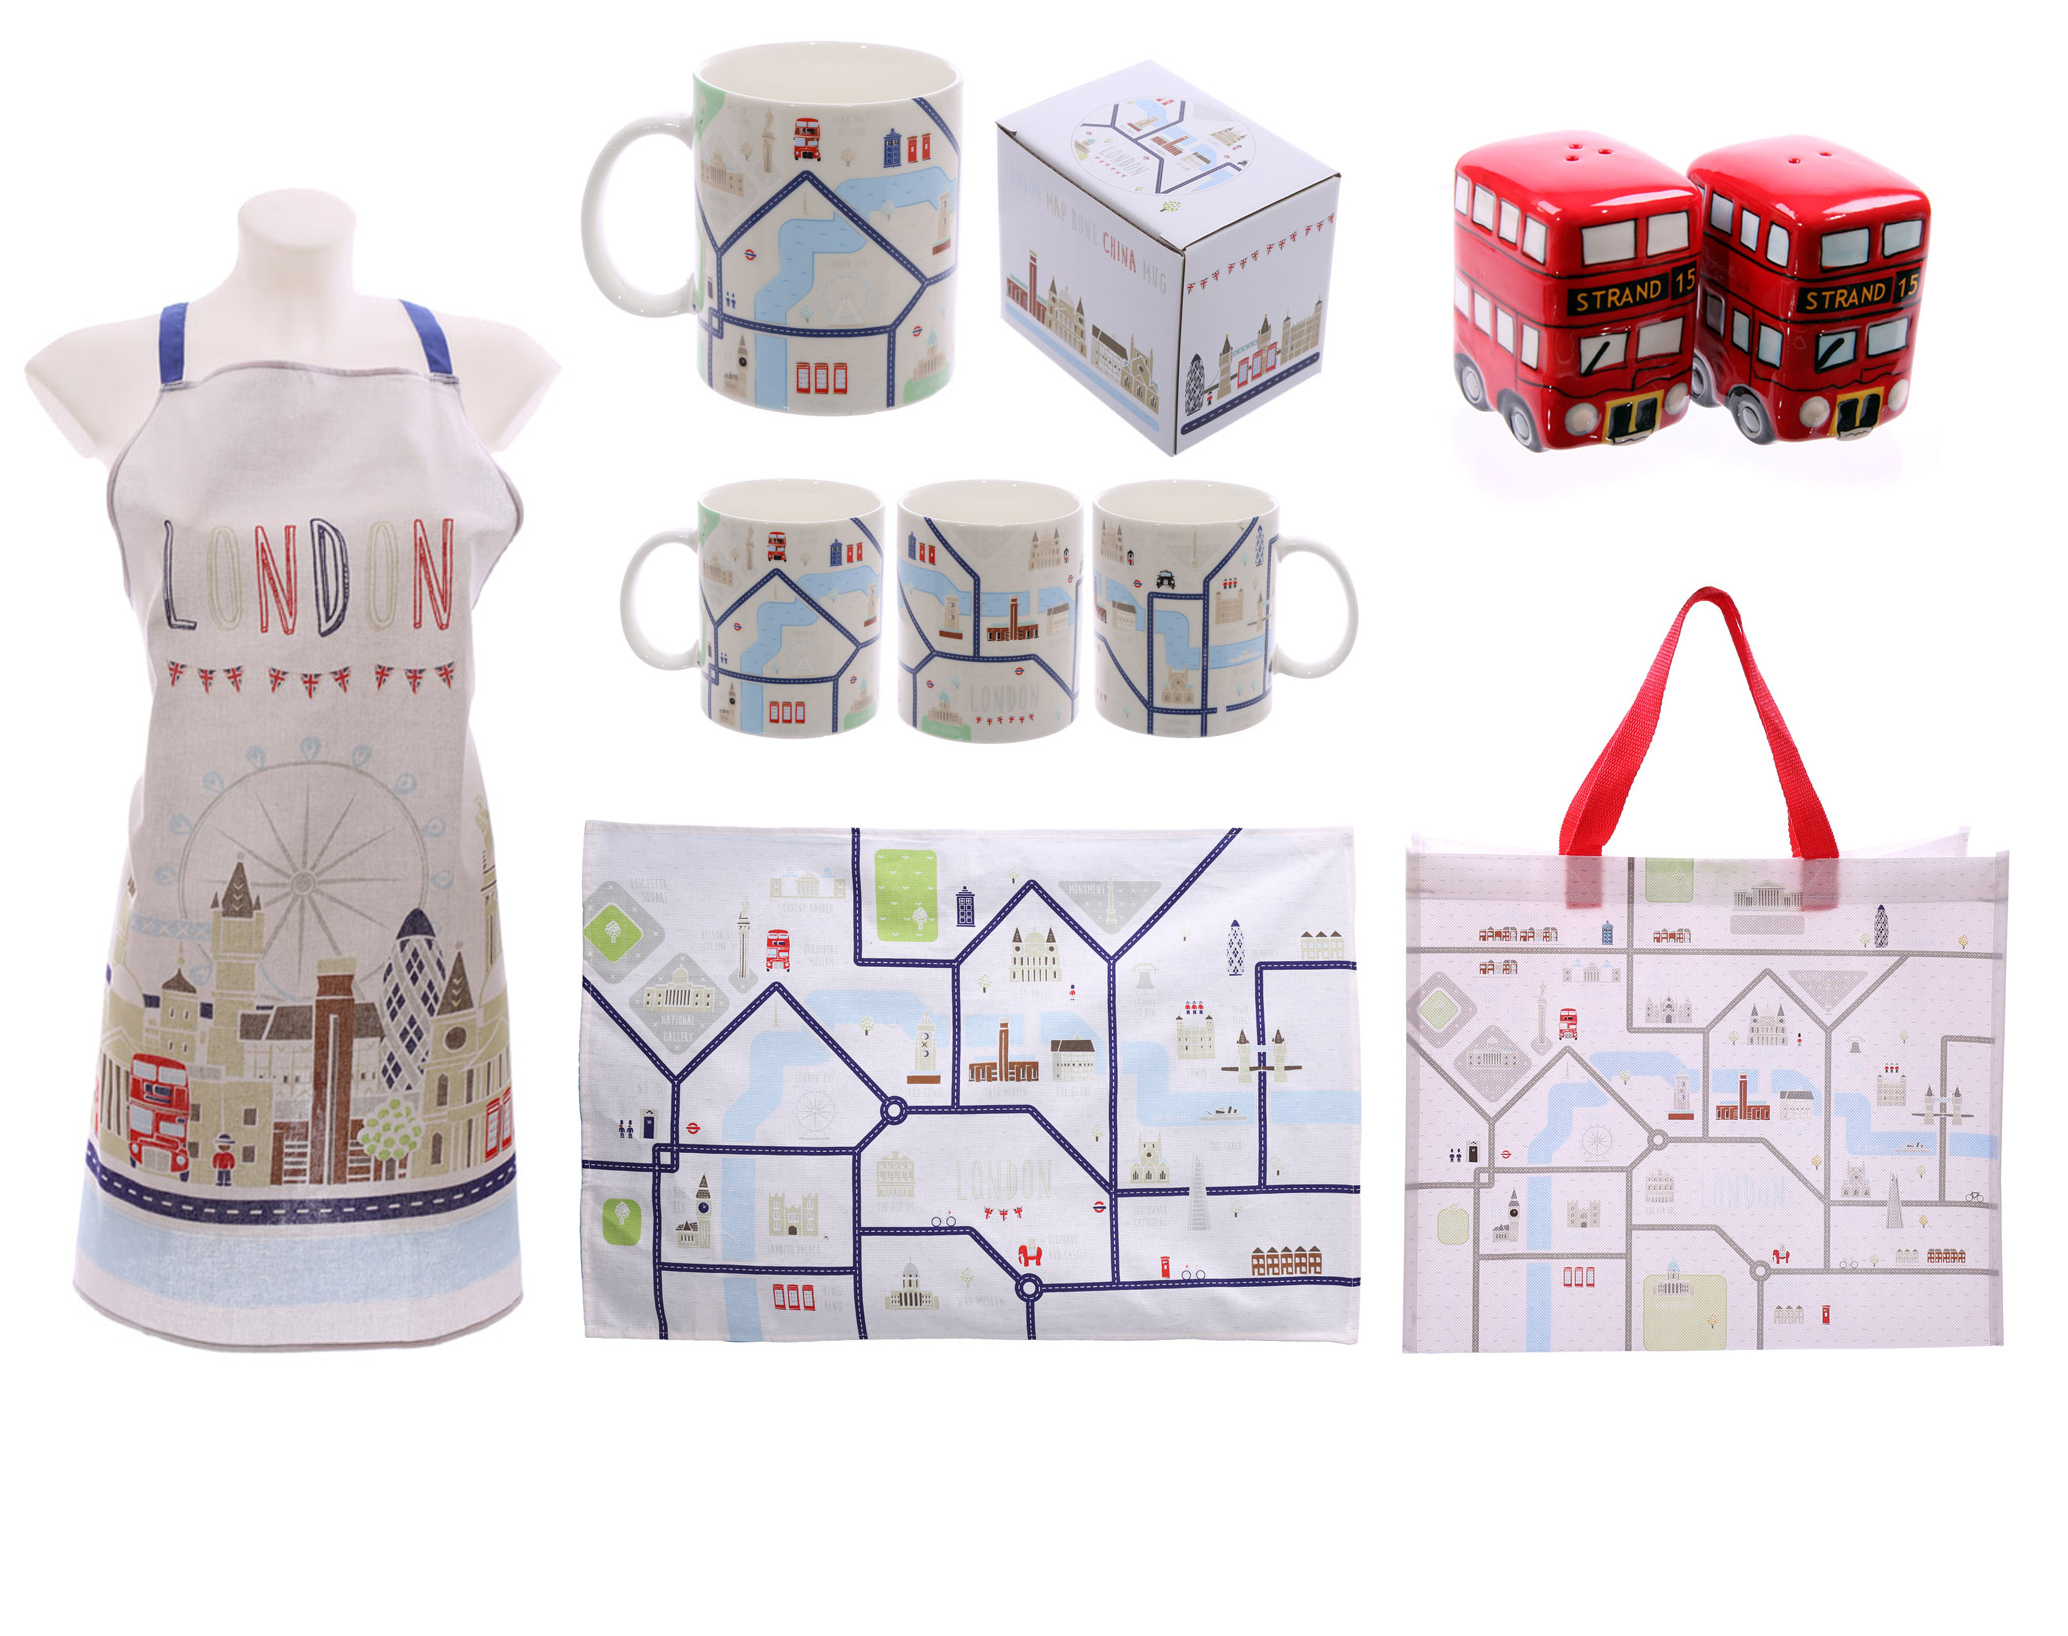 Kitchen Present London Map Kitchen Gift Set For Ladies Ideal Christmas Or Birthday